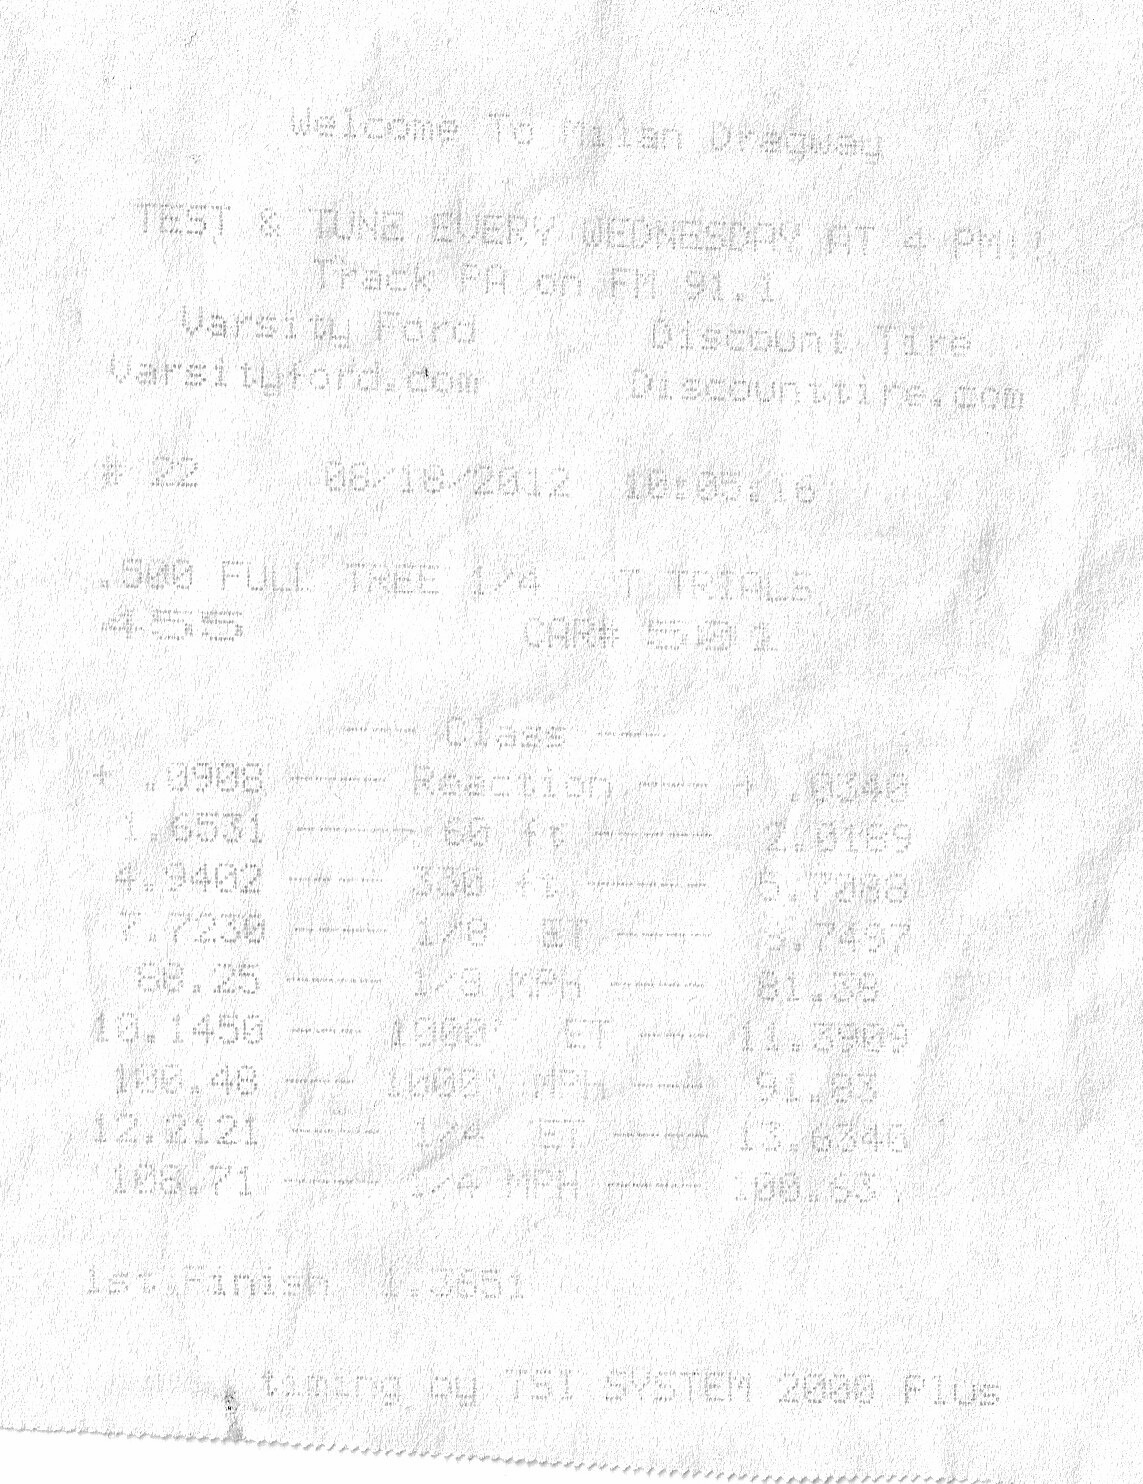 Oldsmobile 88 Custom-Cruiser-Wagon Timeslip Scan